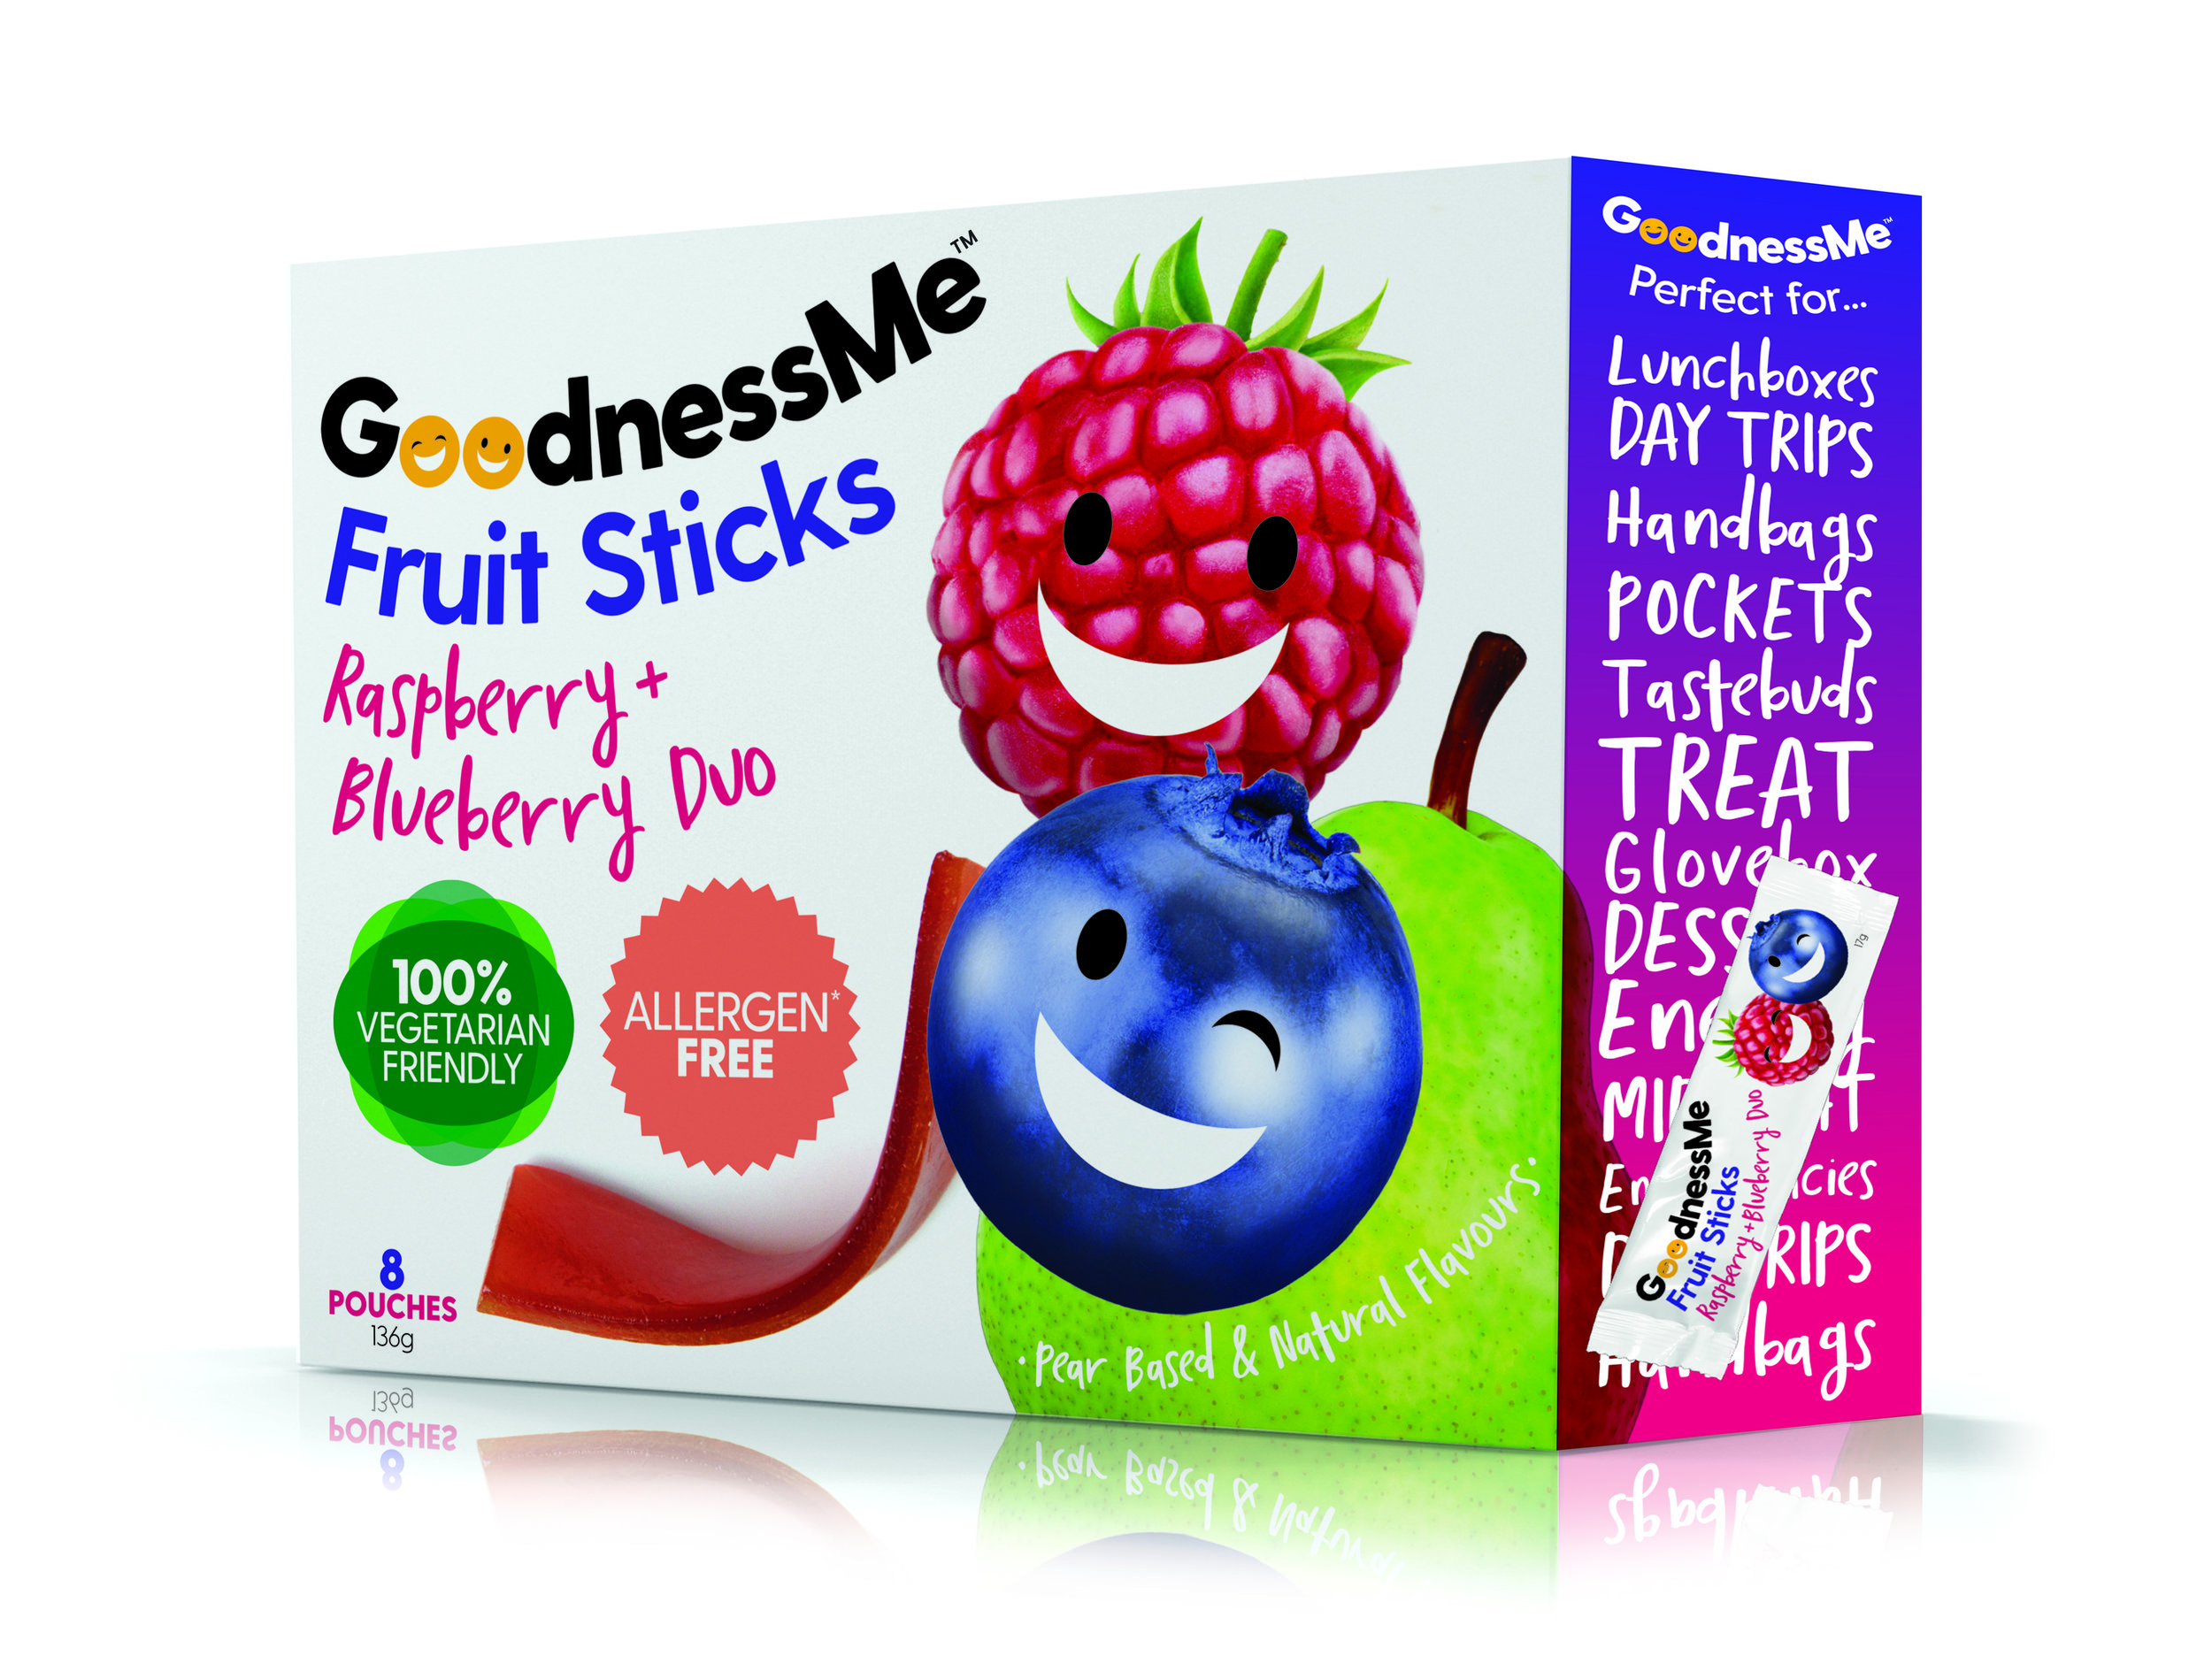 NZGF-GoodnessMe-Fruit-Sticks-Pack-Raspberry-Blueberry-02.jpg